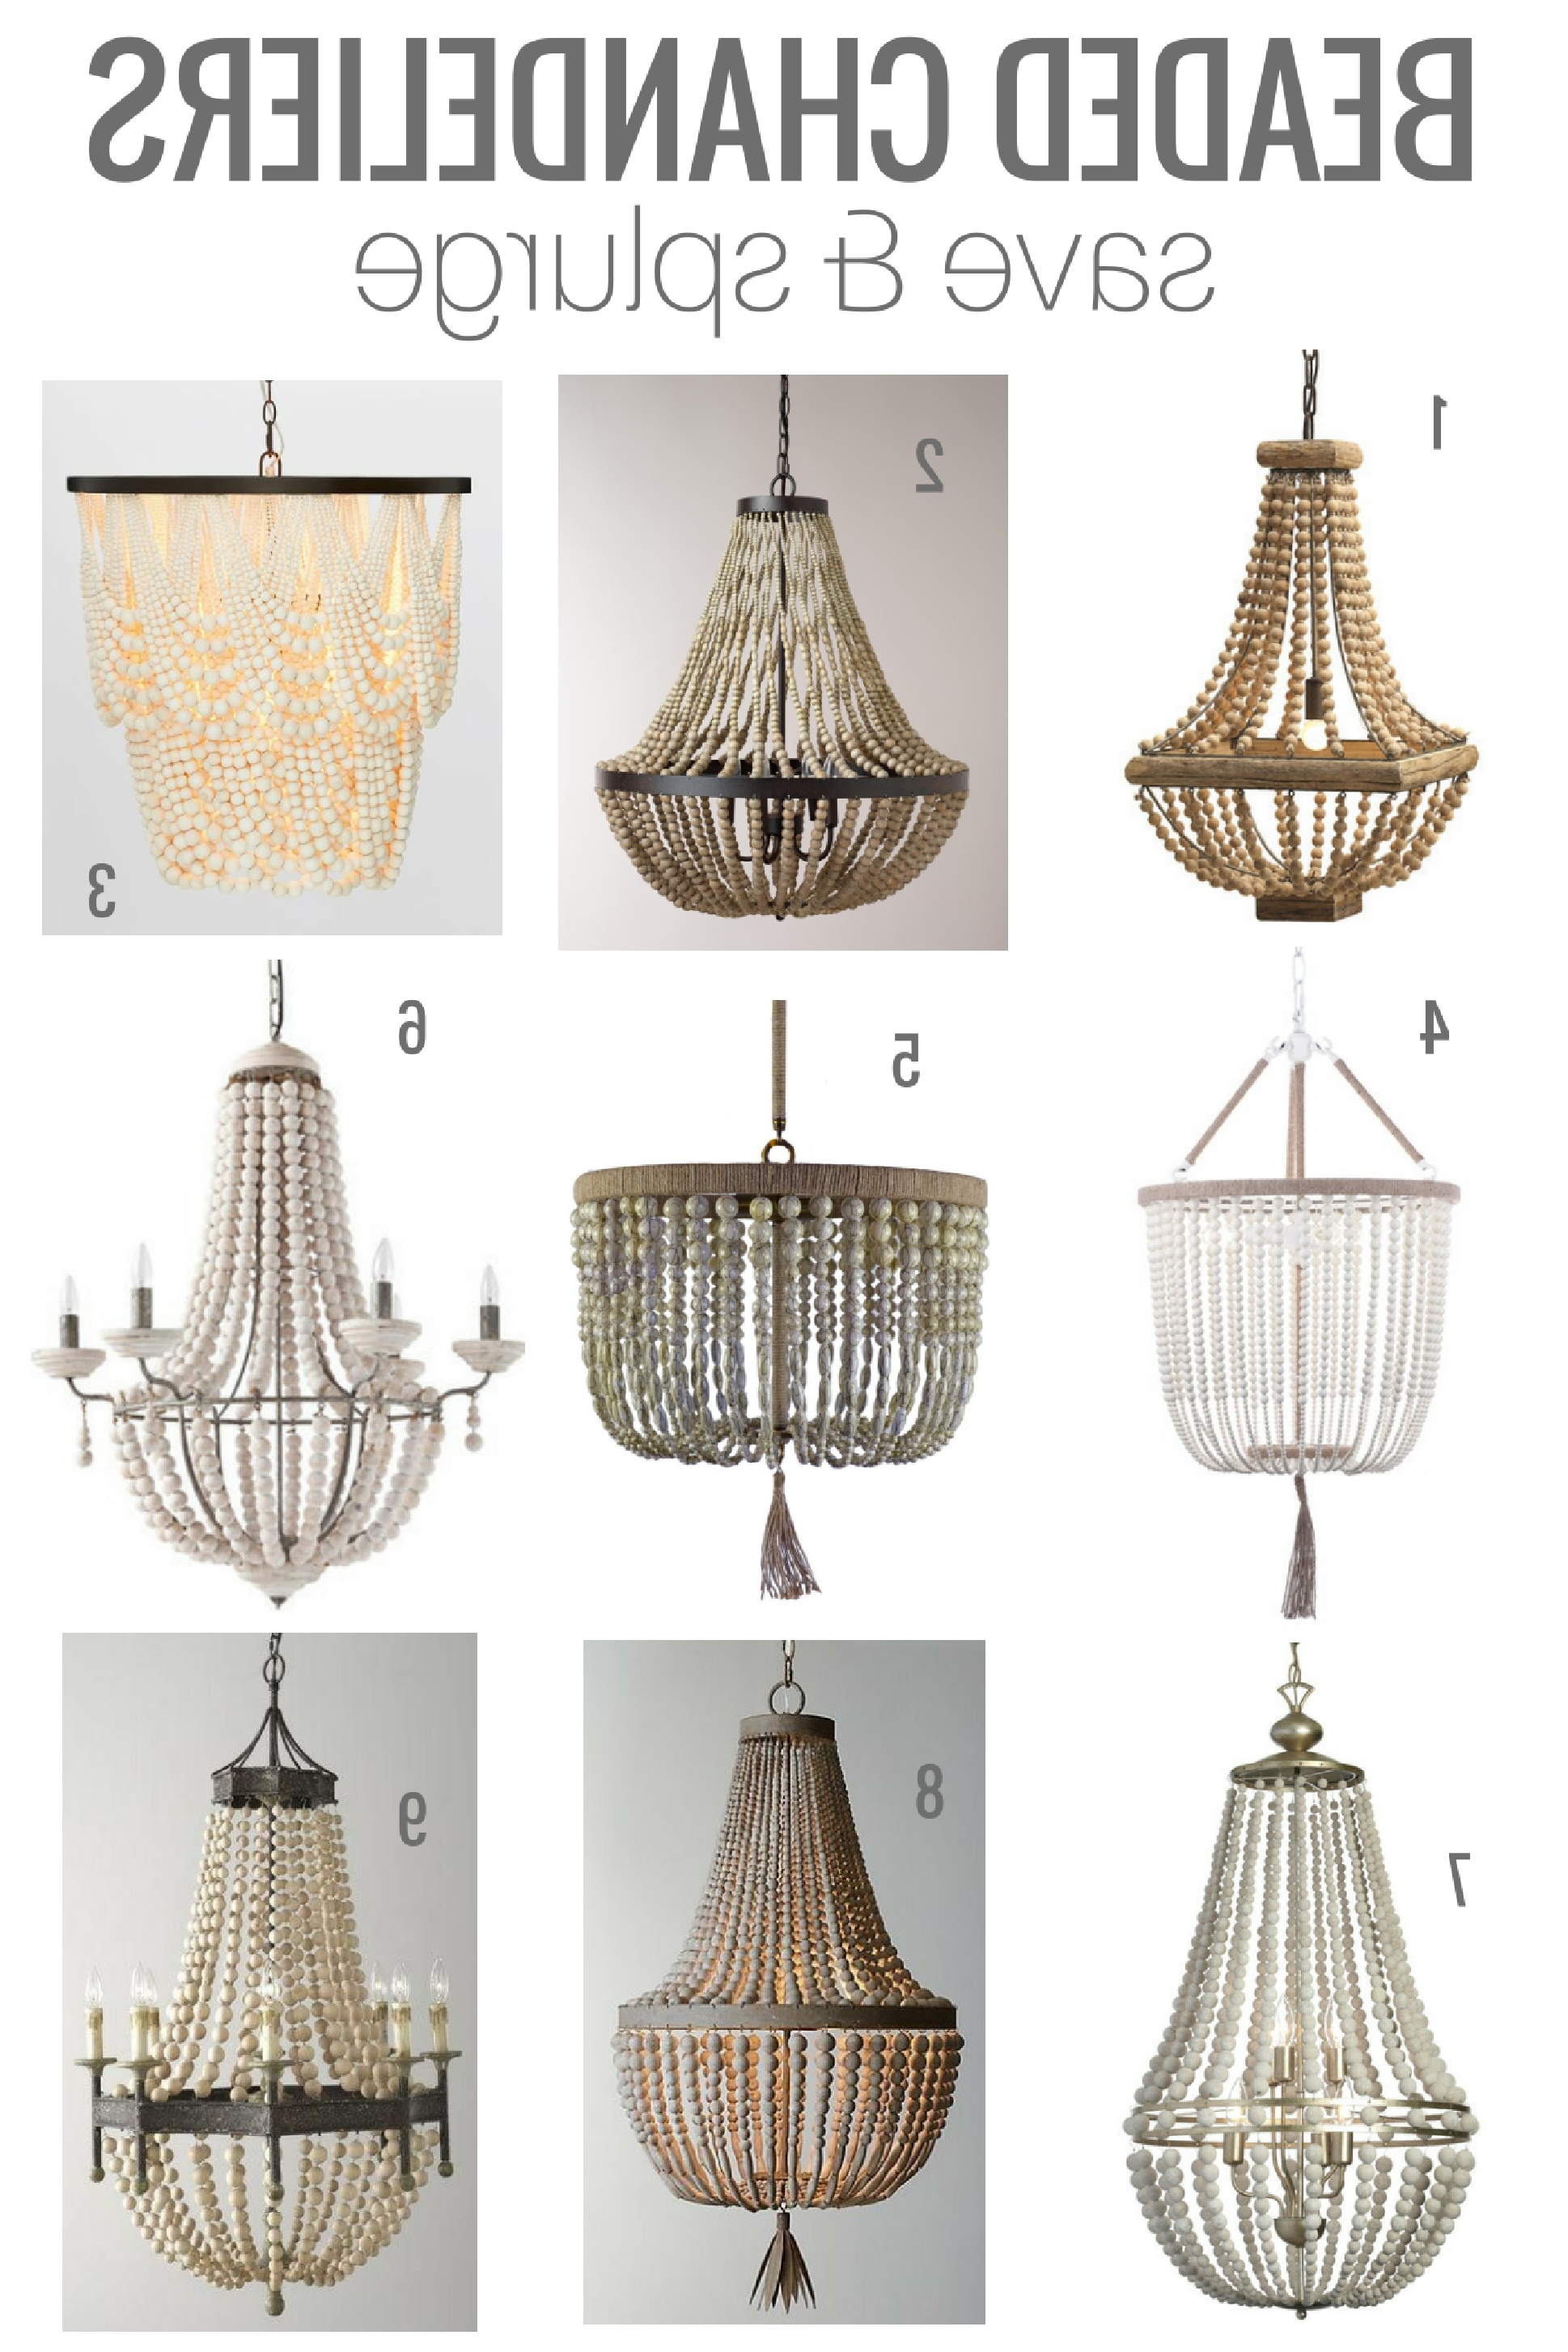 Widely Used Beaded Chandeliers & Invaluable Lighting Lessons (View 20 of 20)